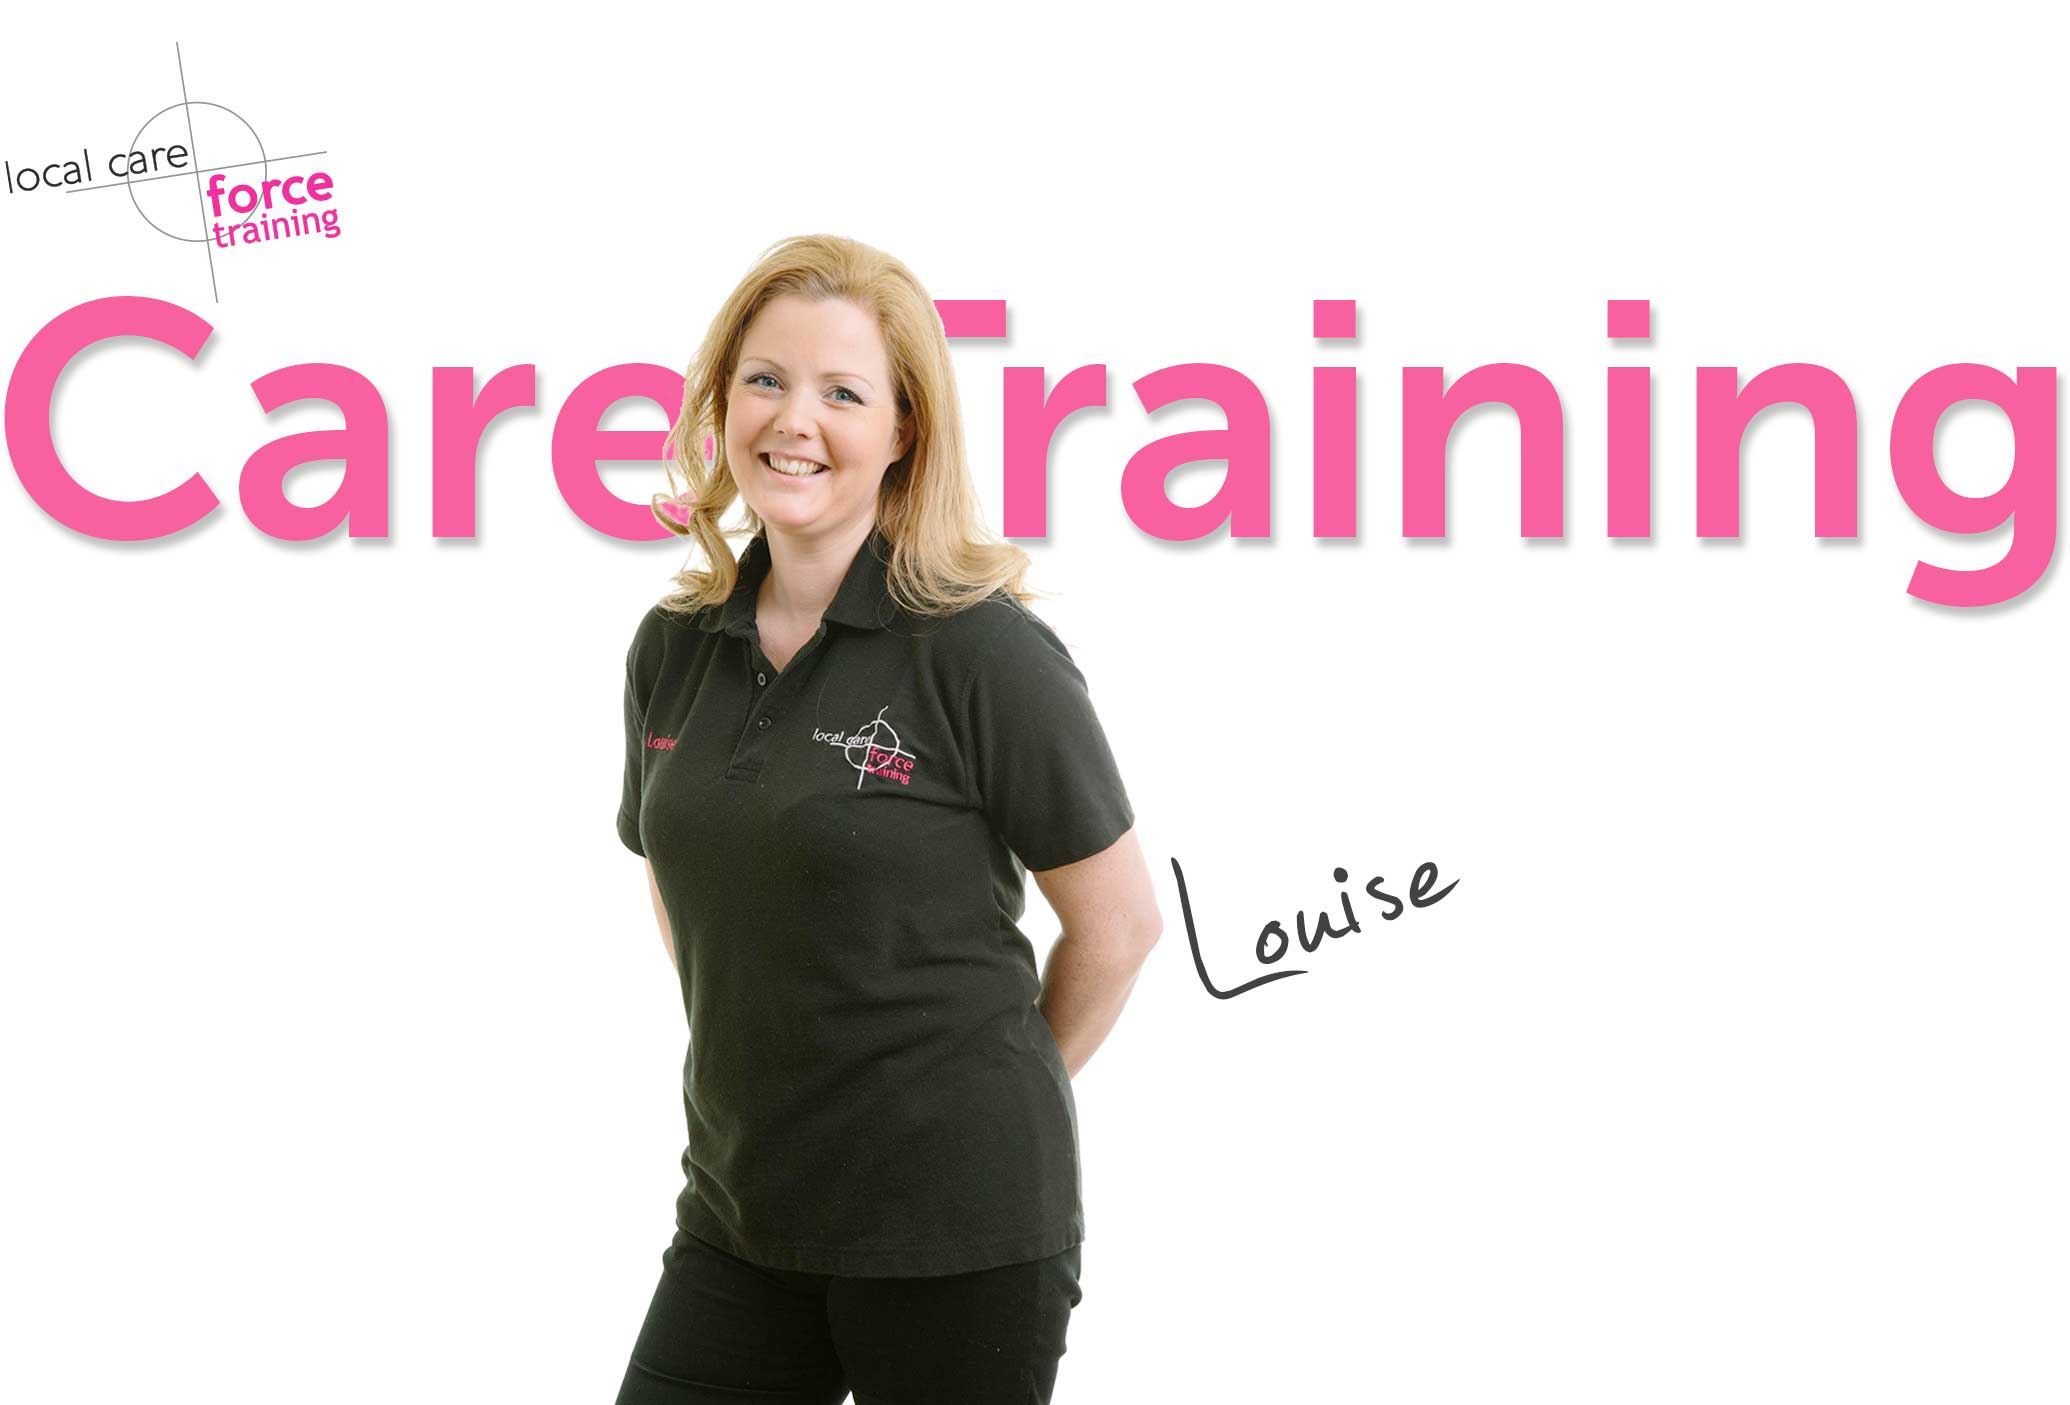 care-training-louise